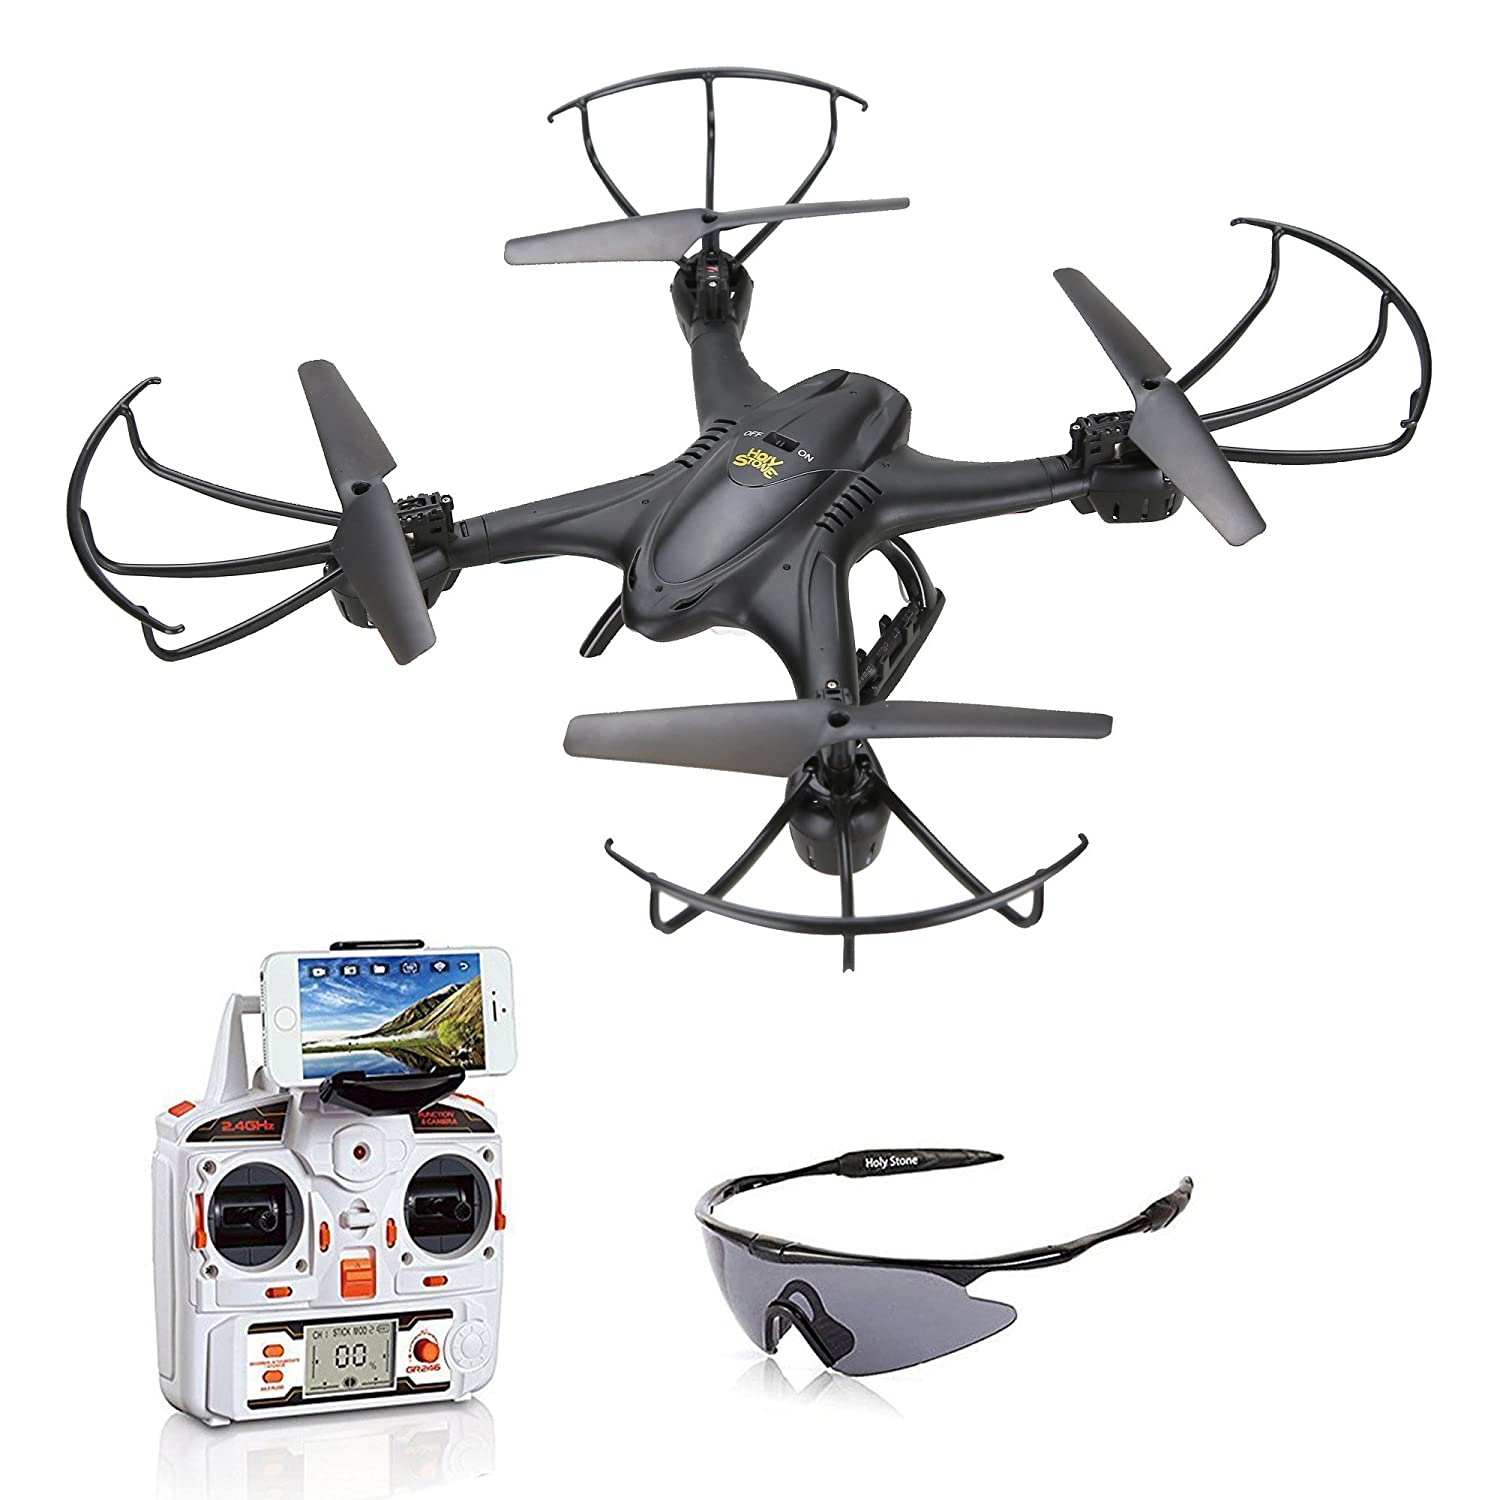 The Best Quadcopter Under $100 2